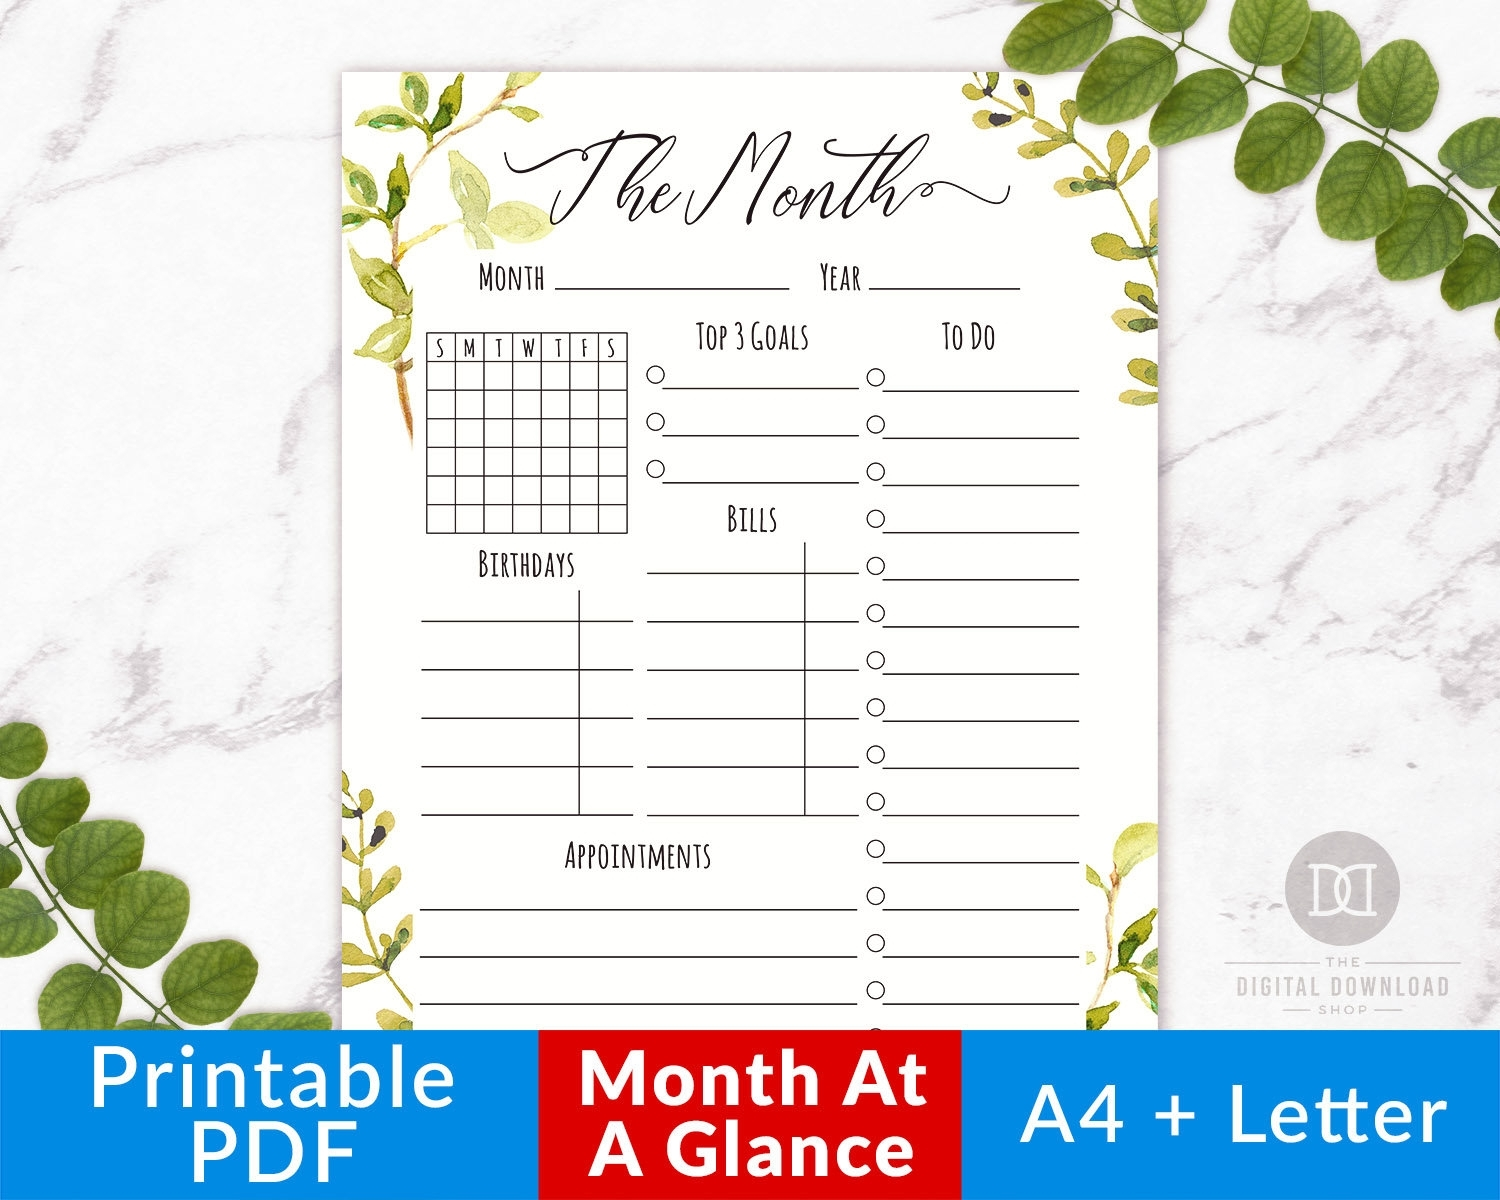 Month At A Glance Printable Watercolor Greenery Monthly | Etsy in Month At A Glance Printable